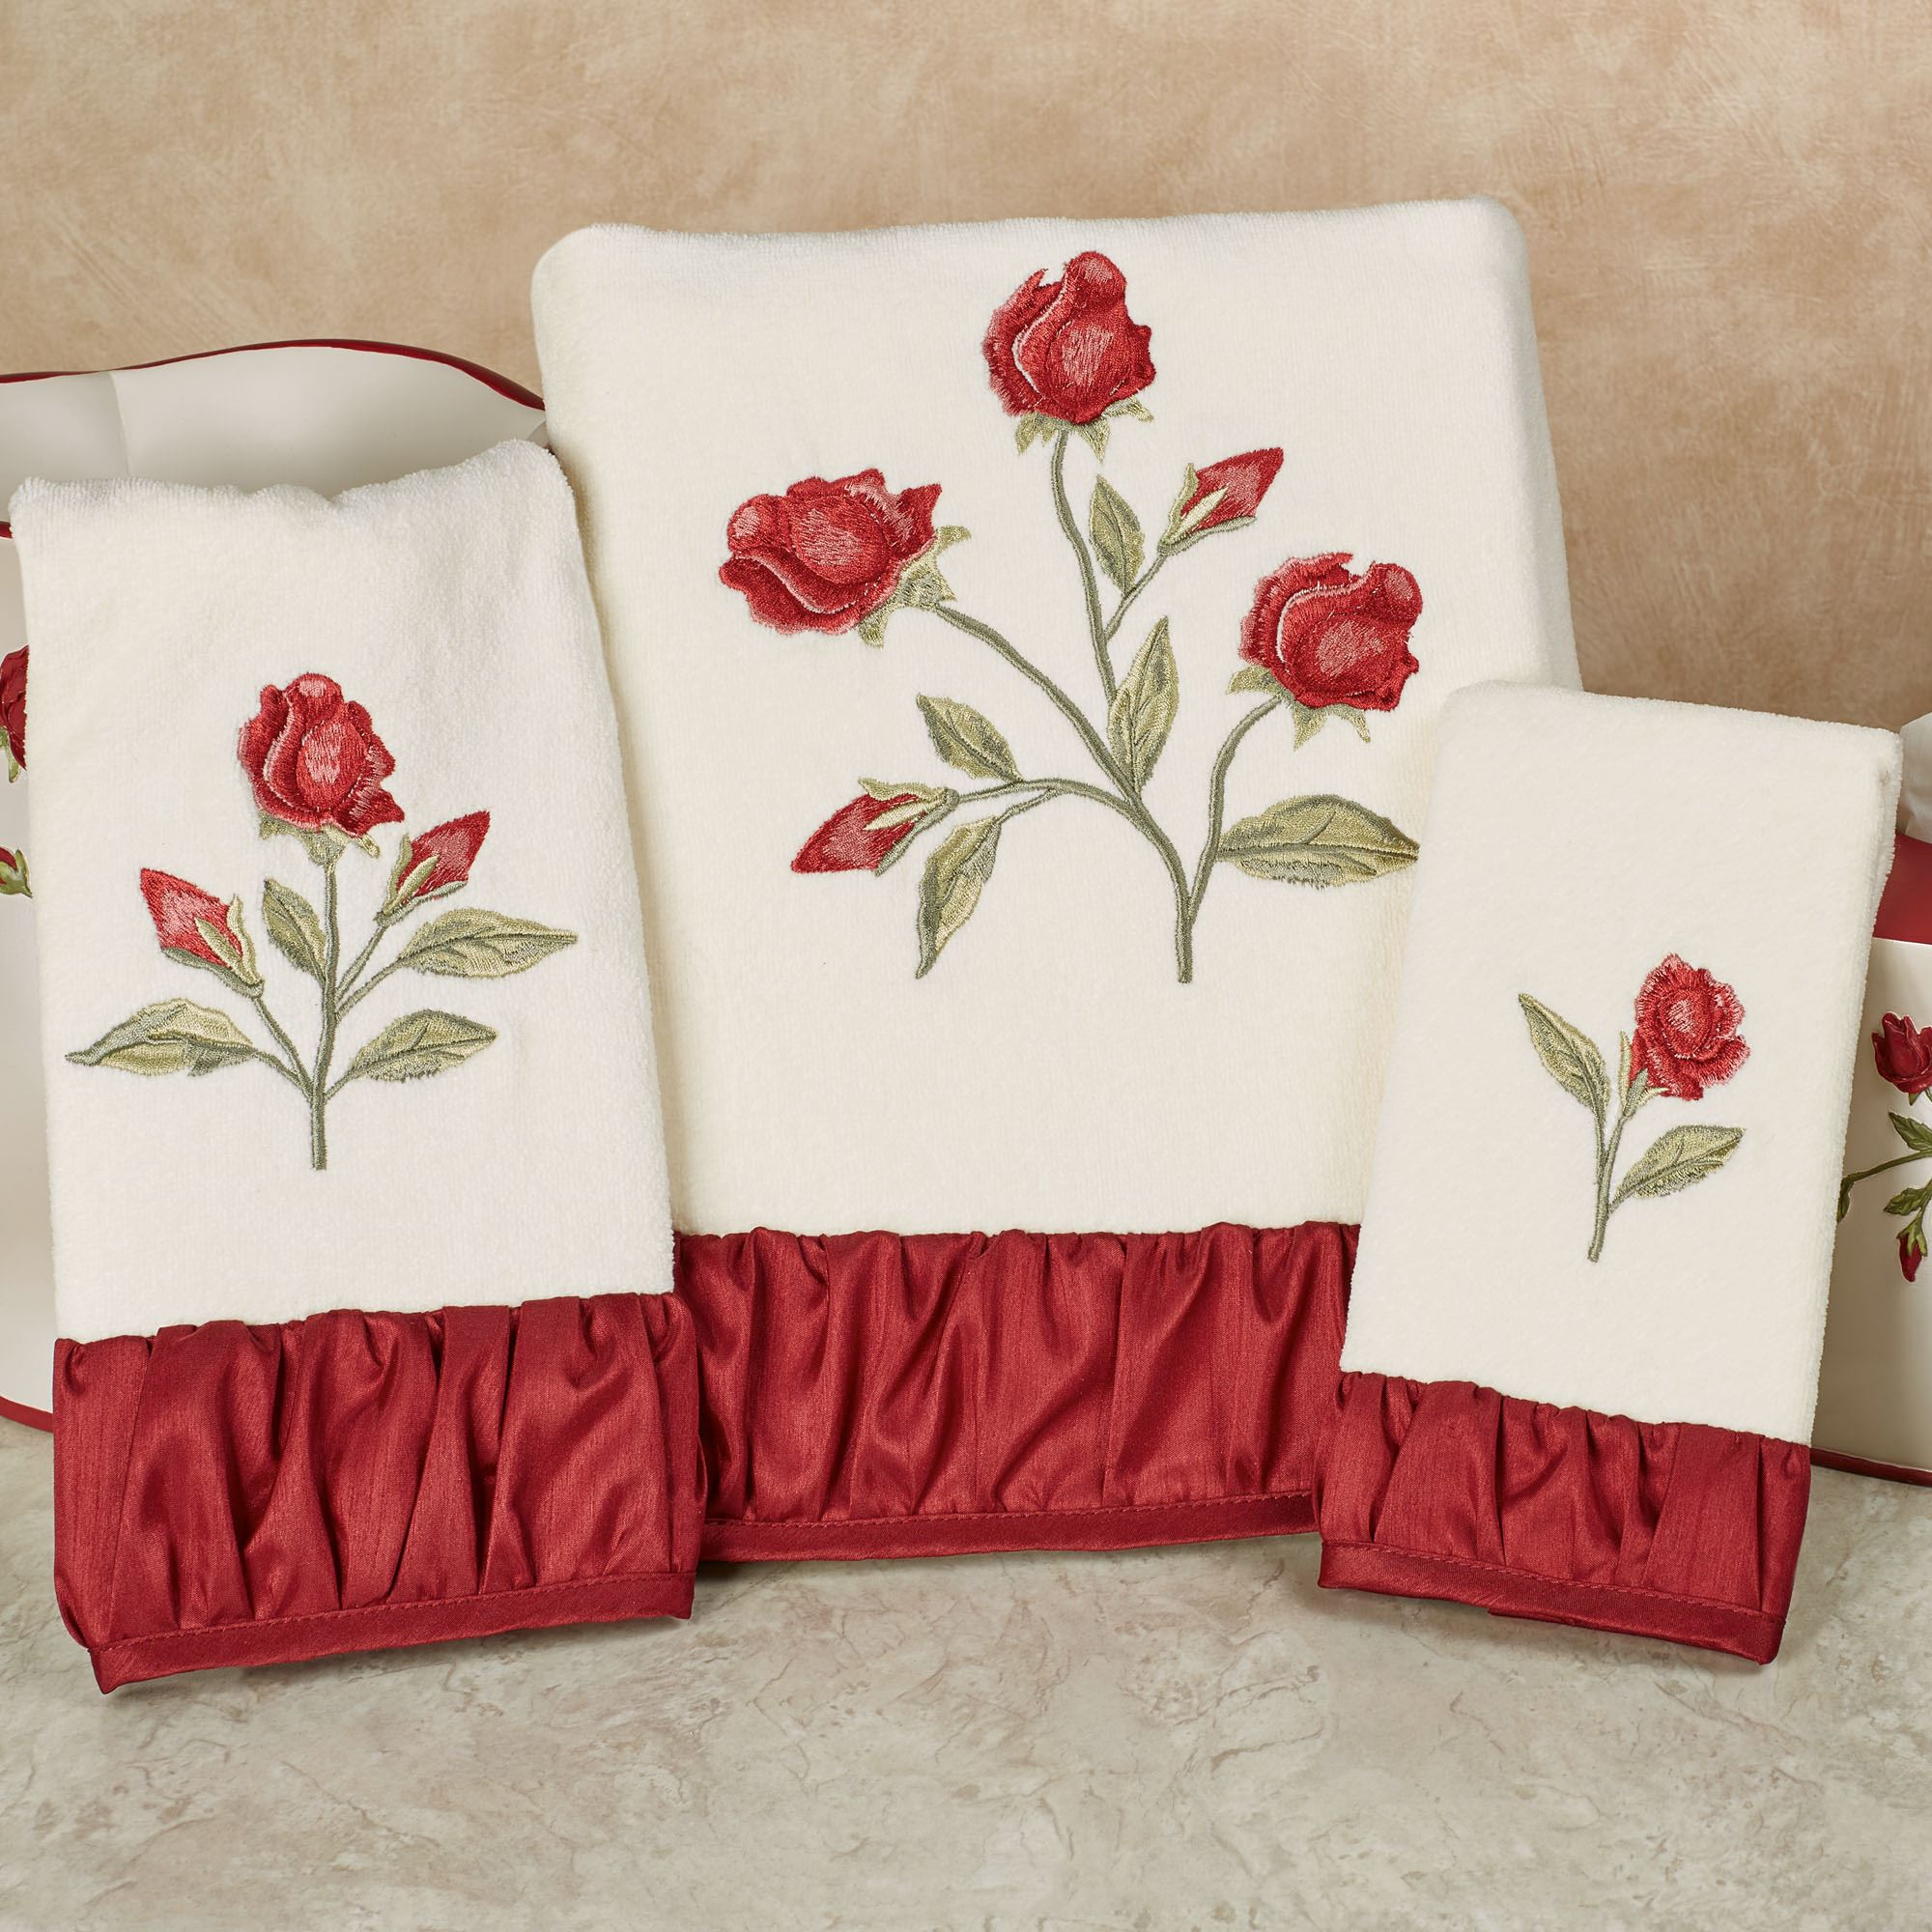 Briar Rose Embroidered Red Floral Bath Towel Set